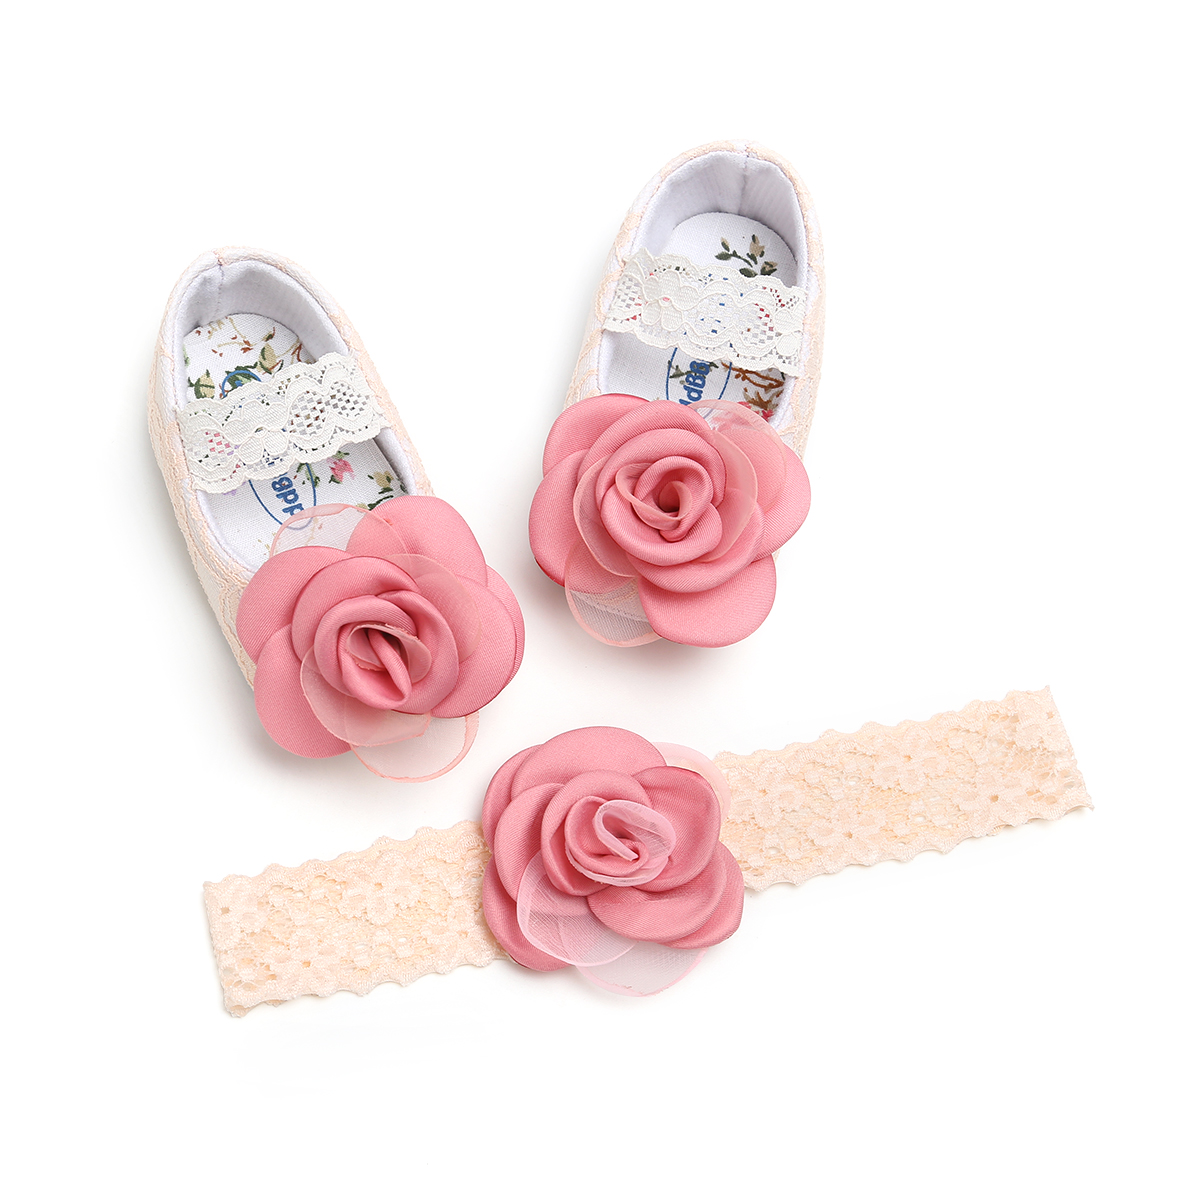 Cute Newborn Infant Baby Girls Flower Shoes Lace Floral Princess Crib Shoes Birthday Gift